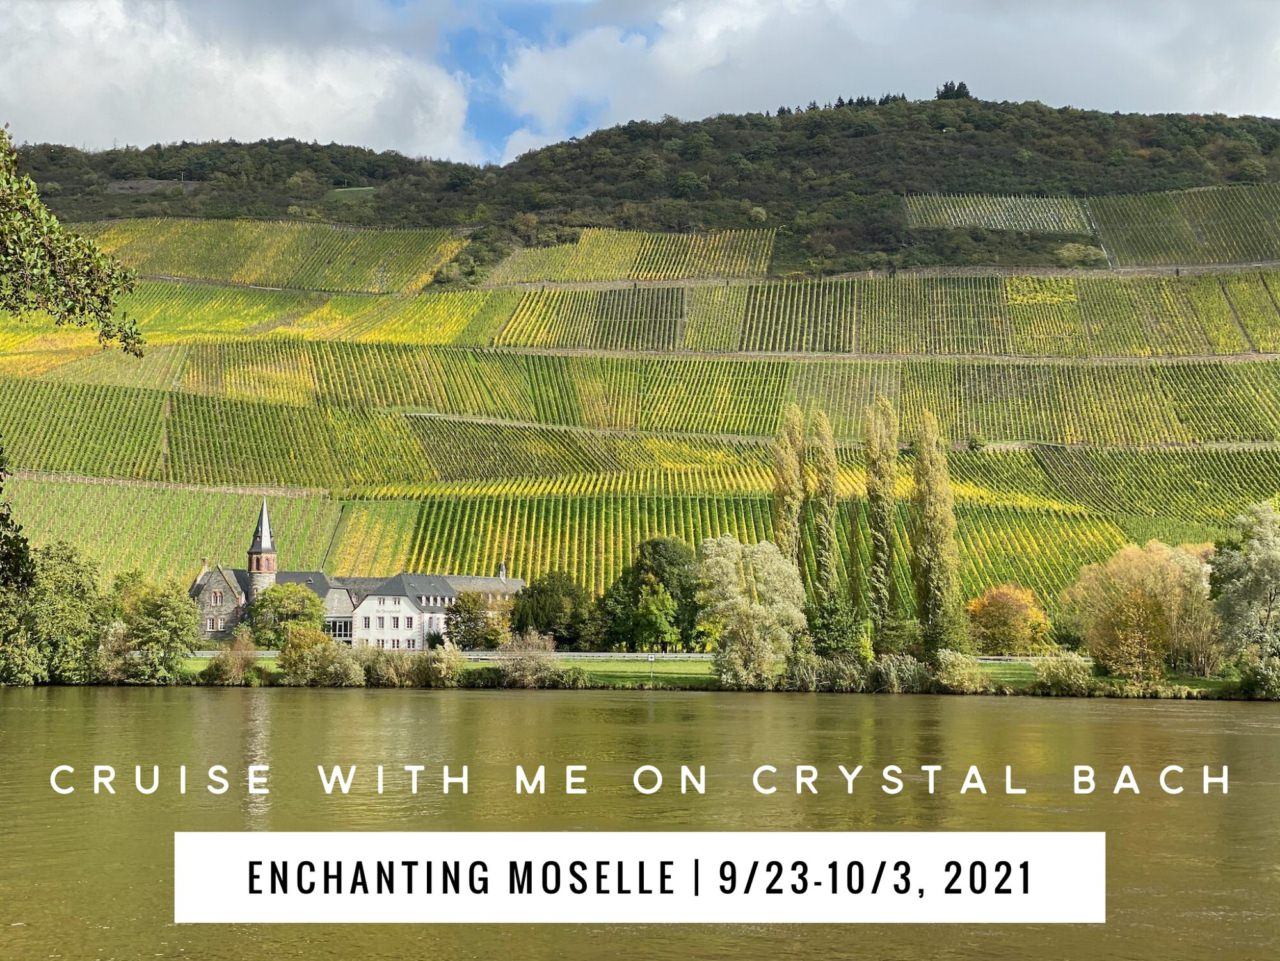 Moselle cruise Crystal Bach